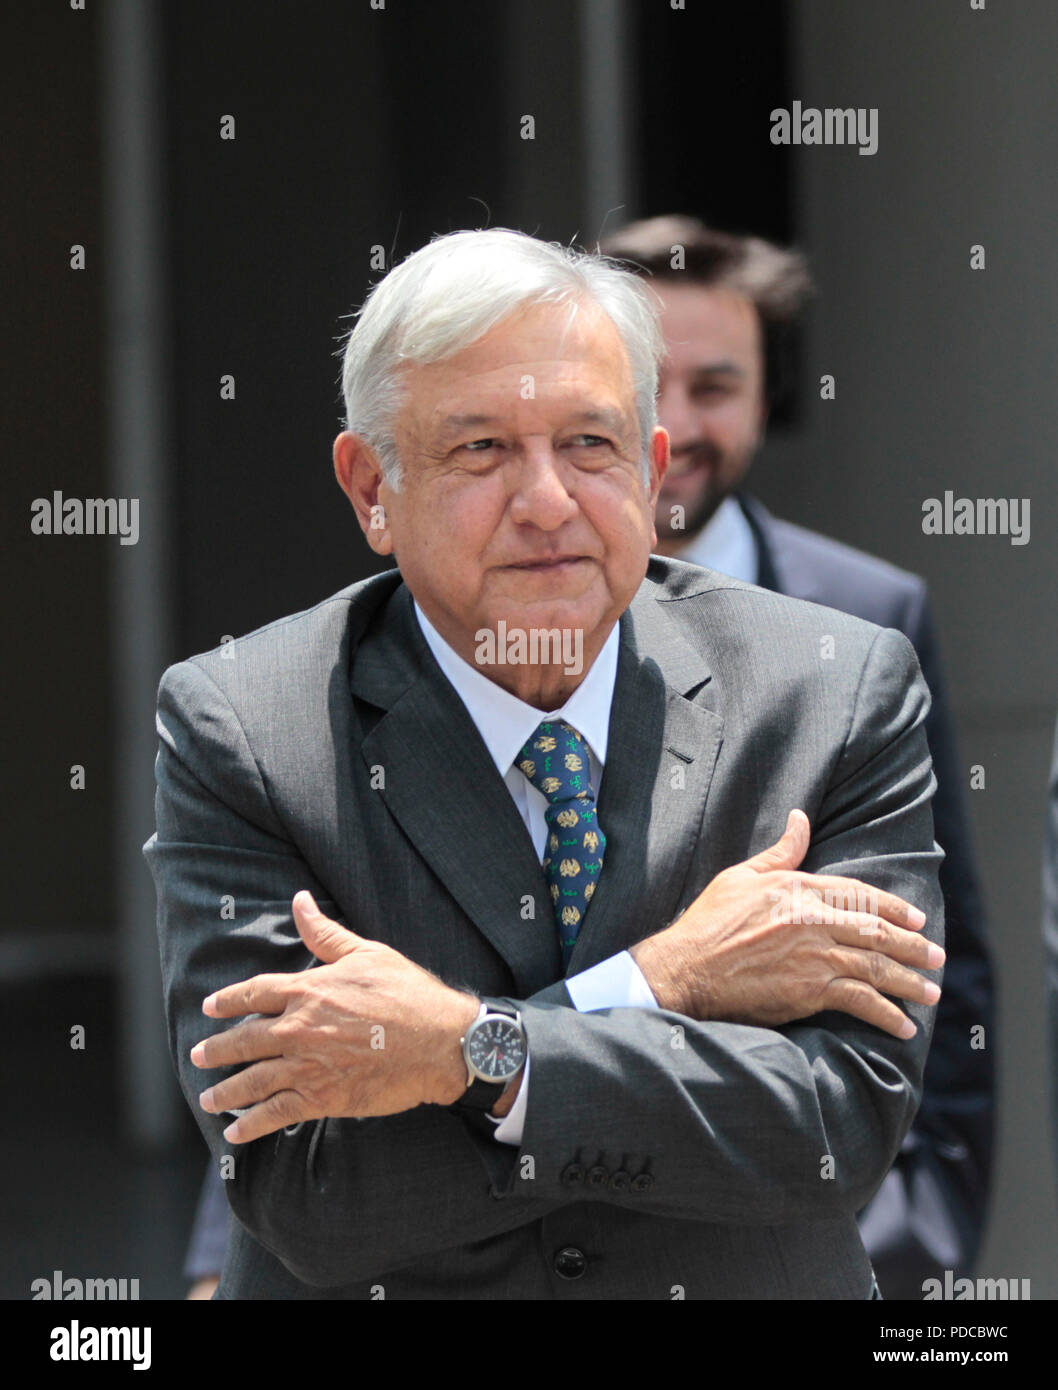 Mexico City, Mexico. 8th August, 2018. Mexico's President-elect Andres Manuel Lopez Obrador greets as he arrives at the Electoral Court of the Federation's Judicial Power, in Mexico City, Mexico, 08 August 2018. The Court validated the Mexican election and Obrador's victory. EFE/Mario Guzman Credit: EFE News Agency/Alamy Live News Stock Photo